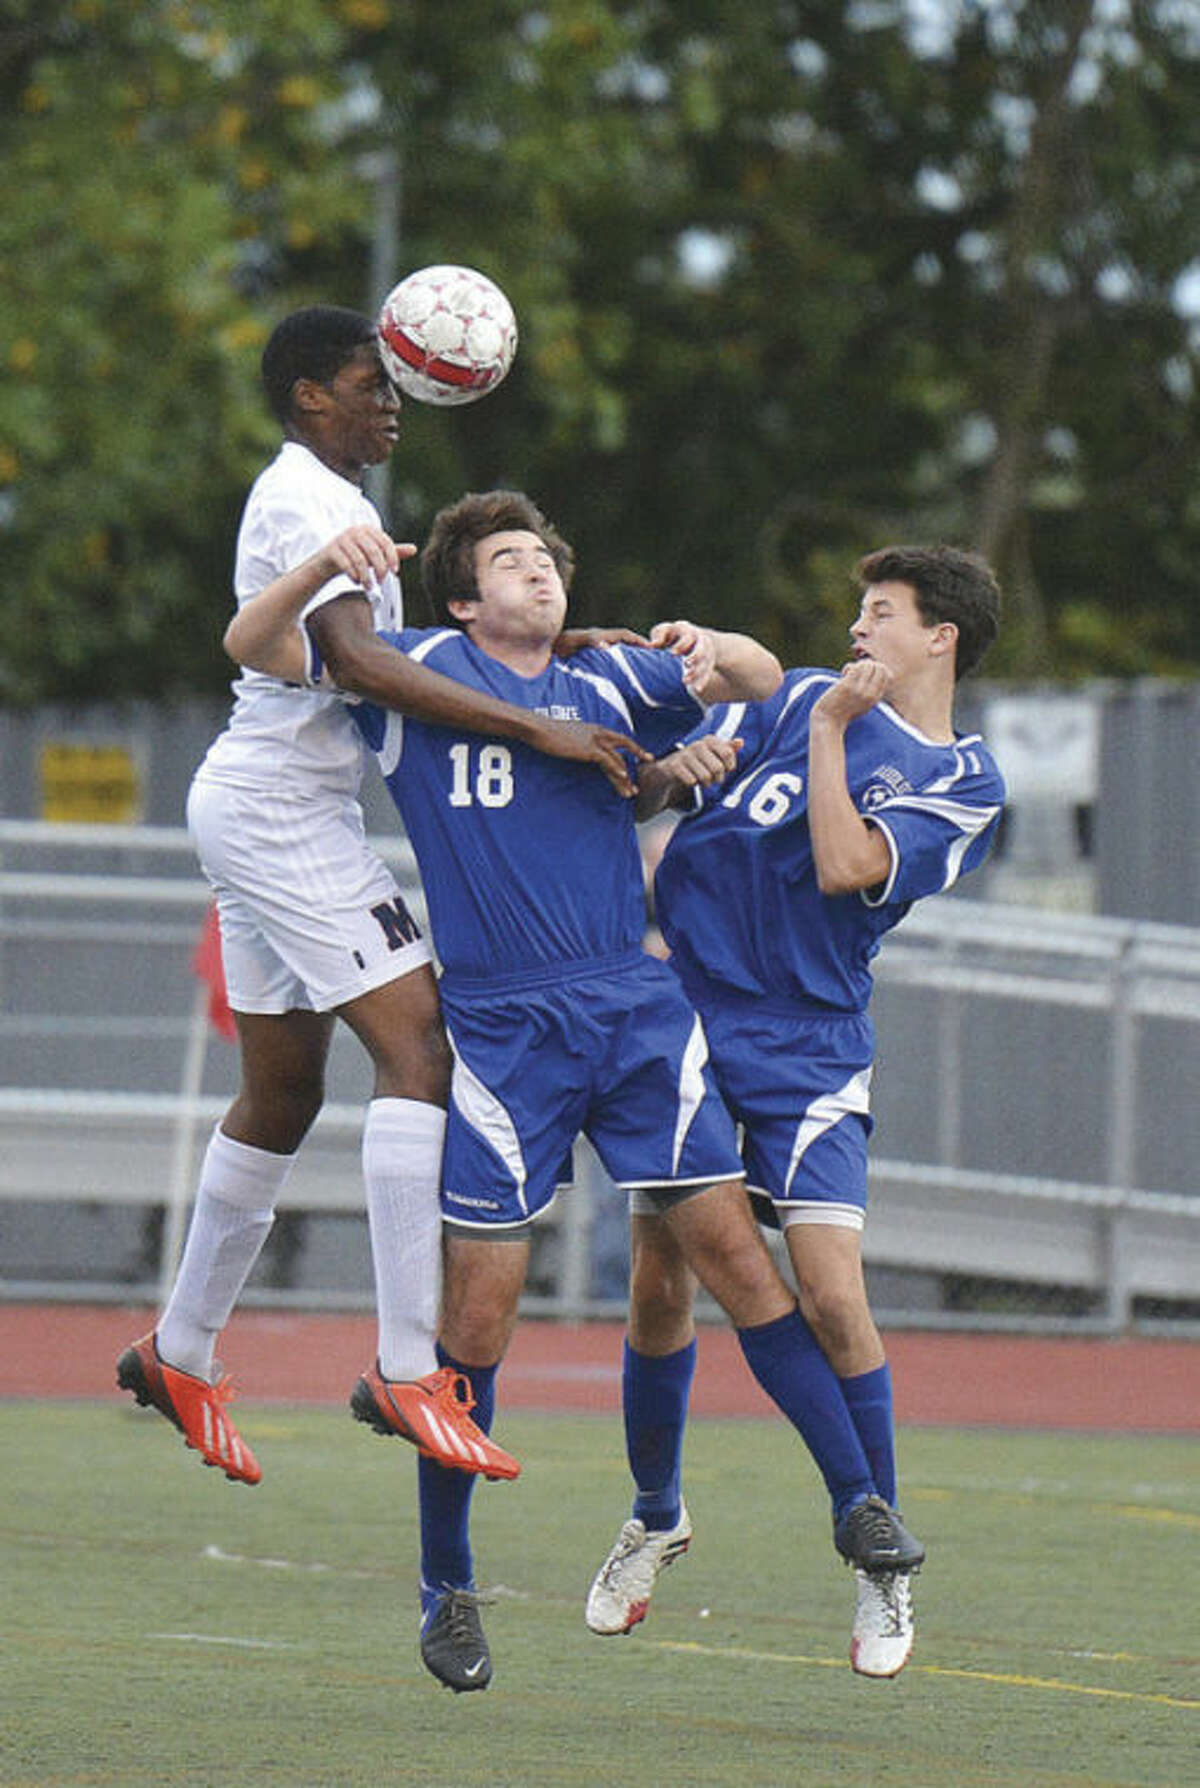 Hour photo/Alex von Kleydorff Brien McMahon's Jonathan Weeks, left, outleaps Ludlowe's Jordan Layne (18) and Brendan Layne (16) to head the ball during Wednesday's contest at BMHS. The Senators posted a 1-0 victory over the visiting Falcons.